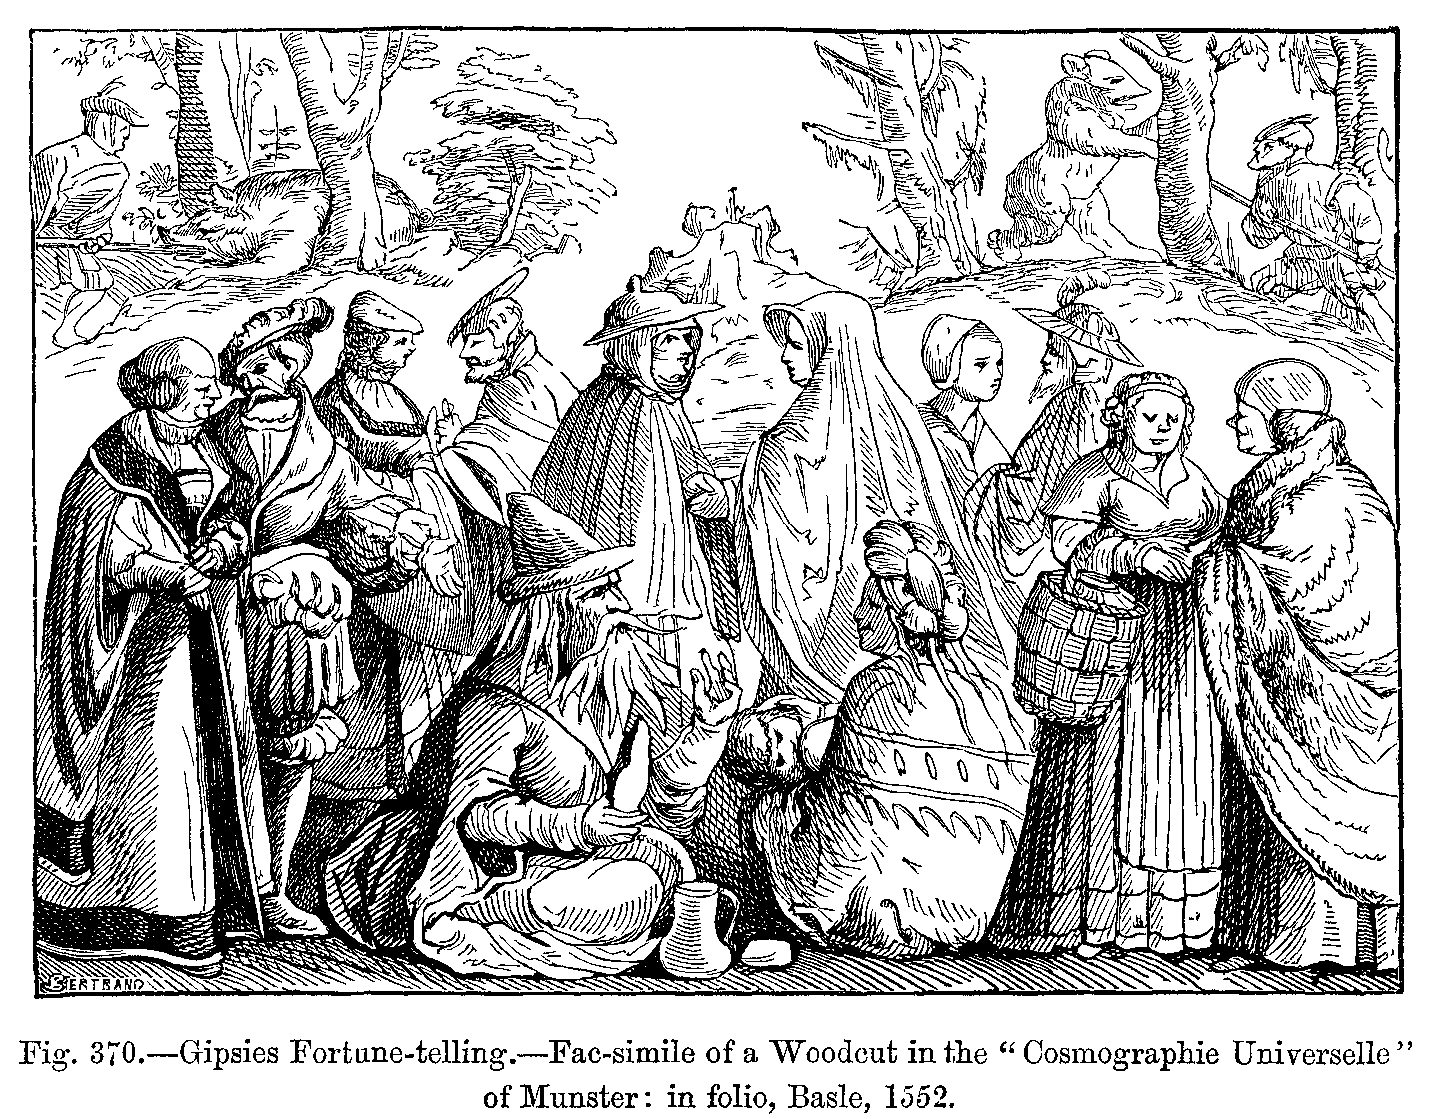 Gipsies_Fortune_telling_Fac_simile_of_a_Woodcut_in_the_Cosmographie_Universelle_of_Munster_in_folio_Basle_1552